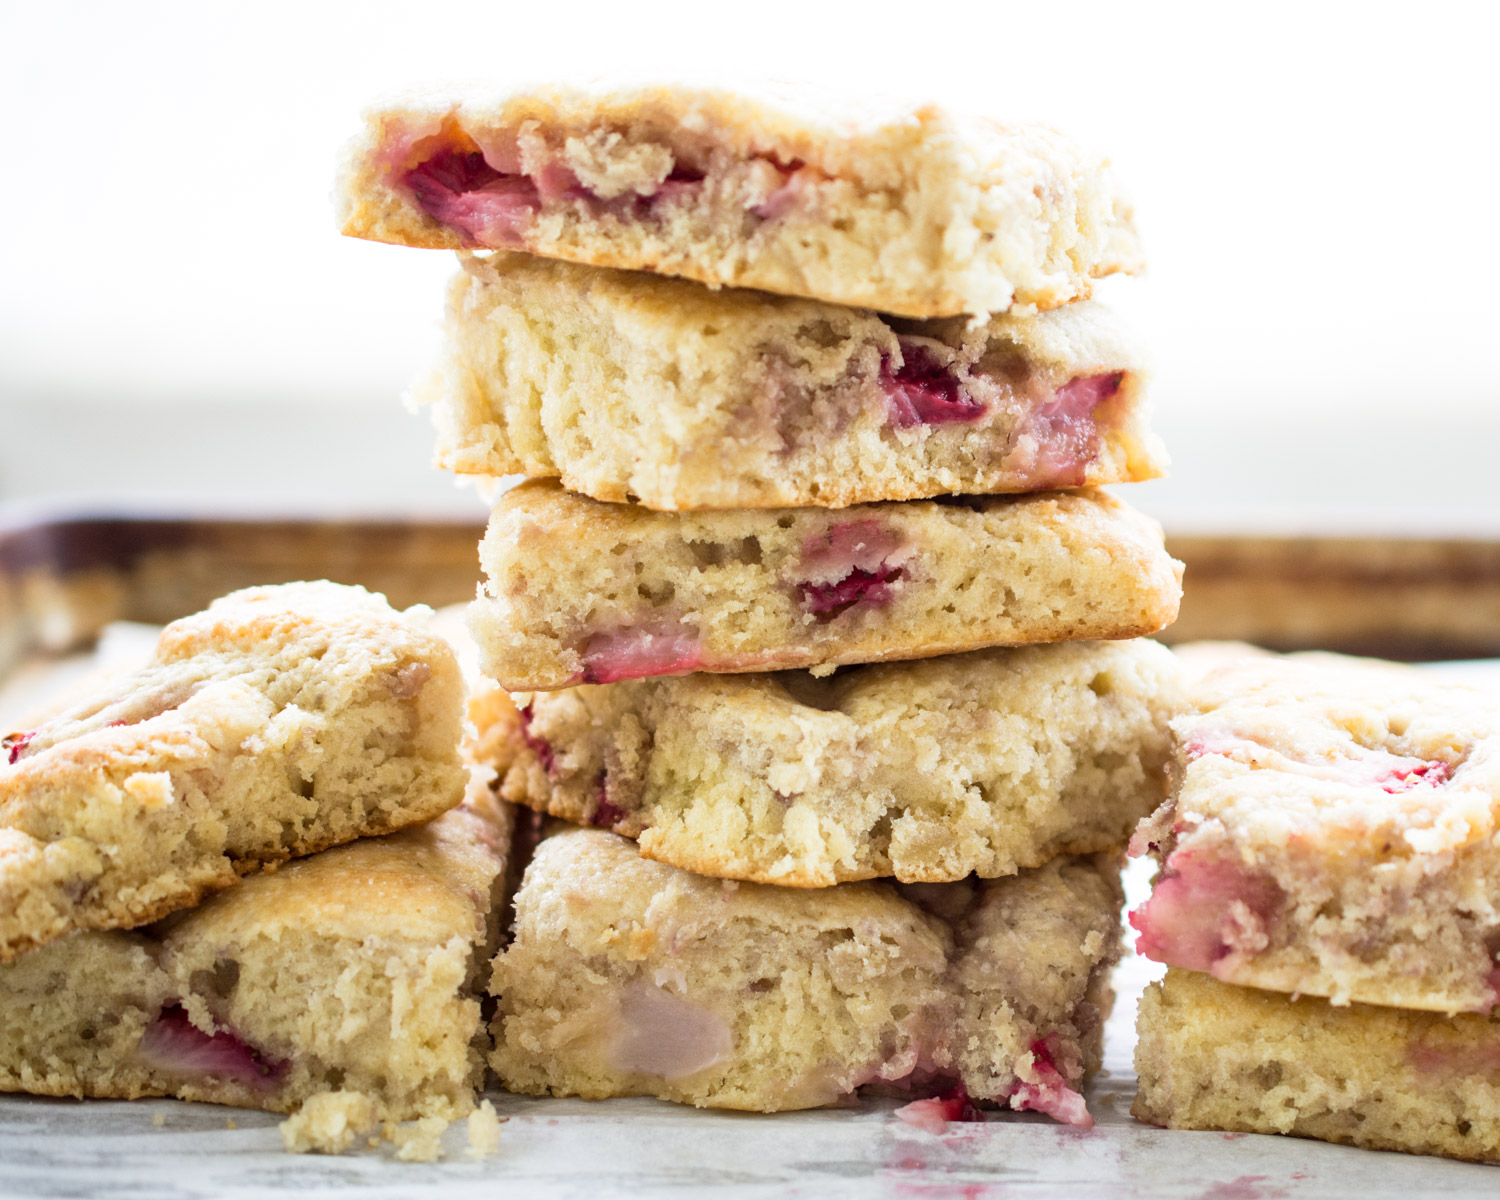 Strawberry biscuits piled high!